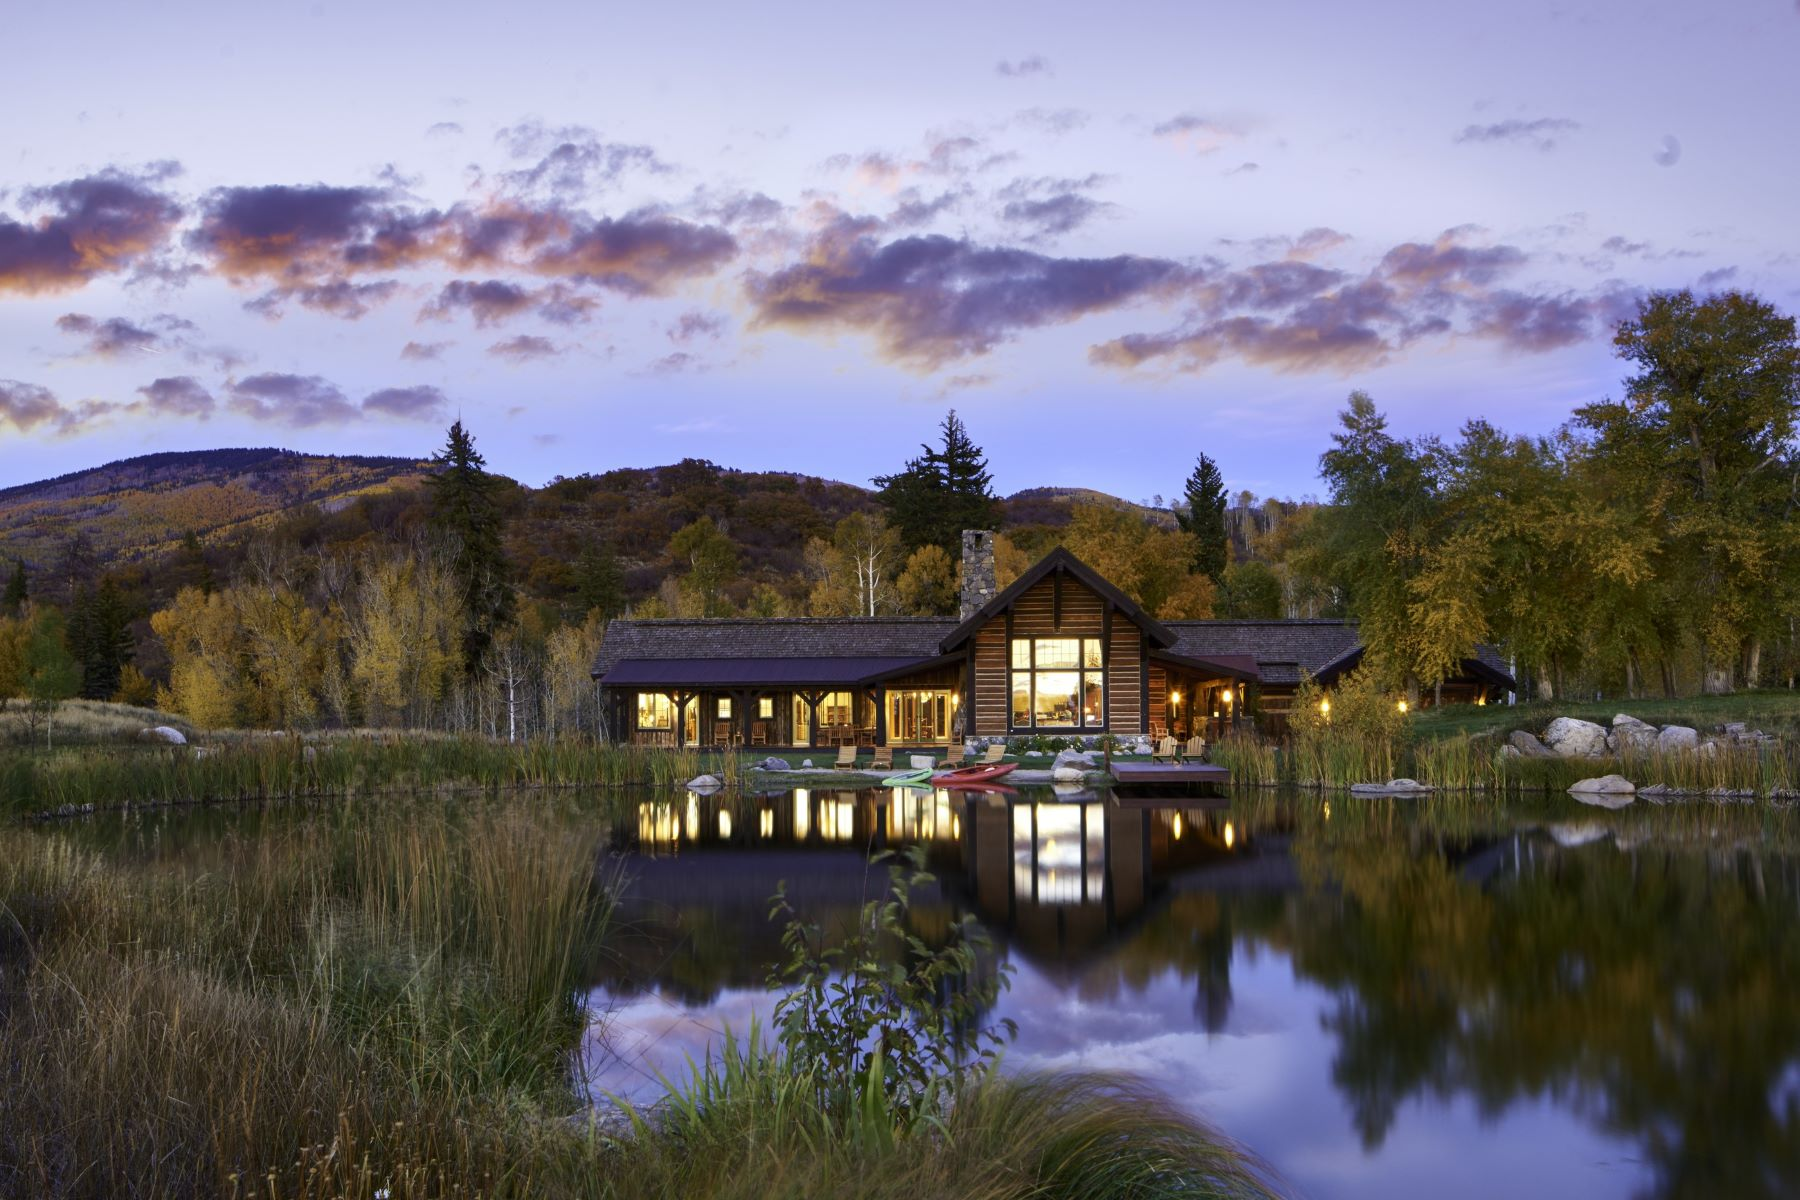 Moradia para Venda às Storm Mountain Ranch 33570 Watersong Lane Steamboat Springs, Colorado, 80487 Estados Unidos